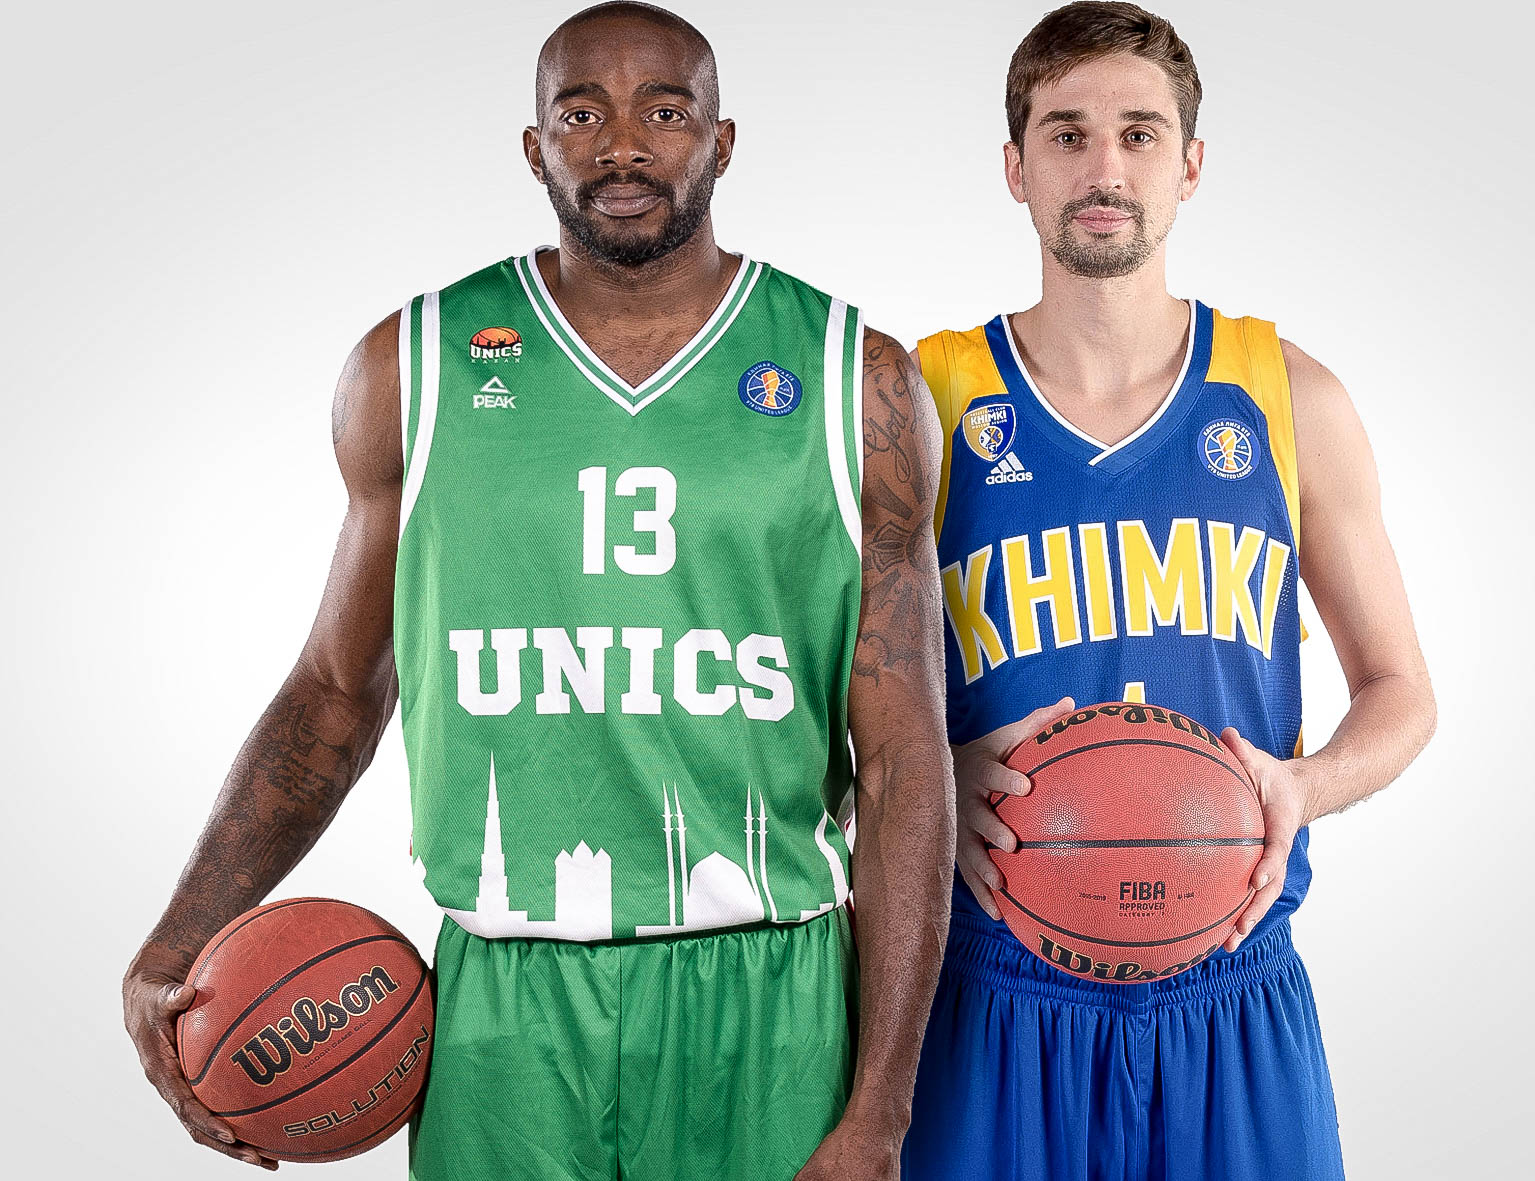 Man vs. System: UNICS Battles Khimki